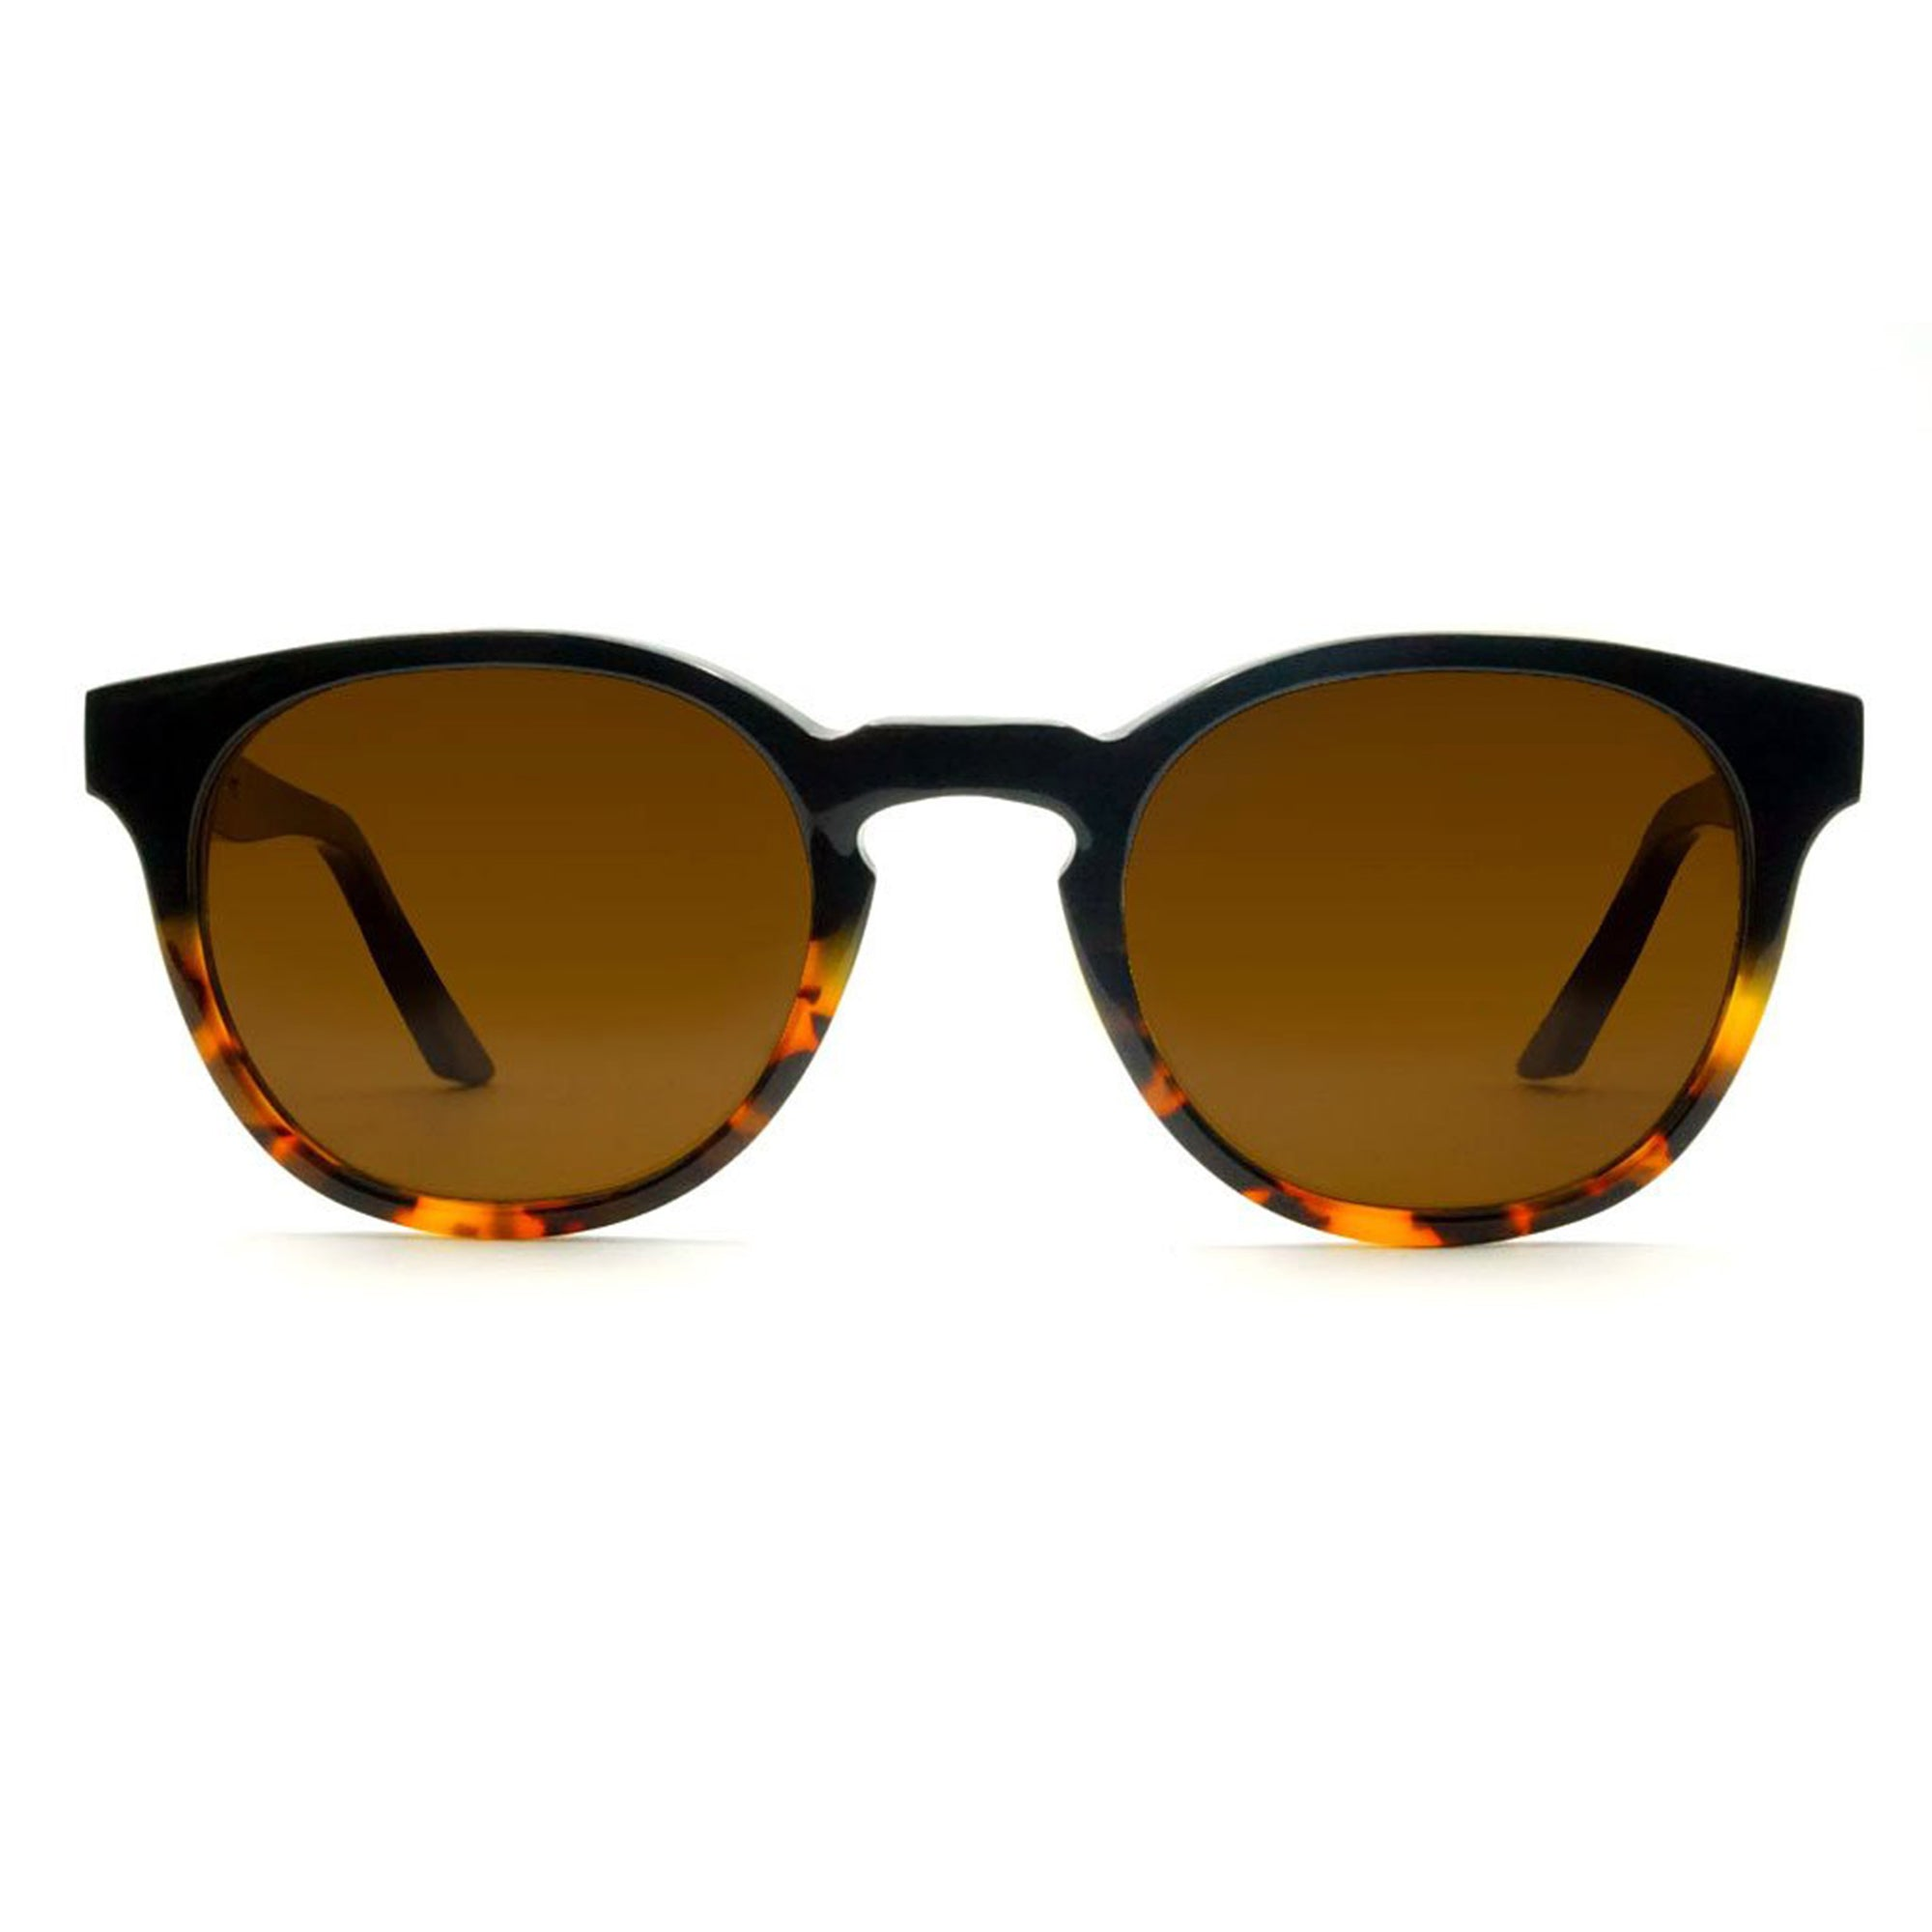 Lowercase Marlton Sunglasses in Black Amber